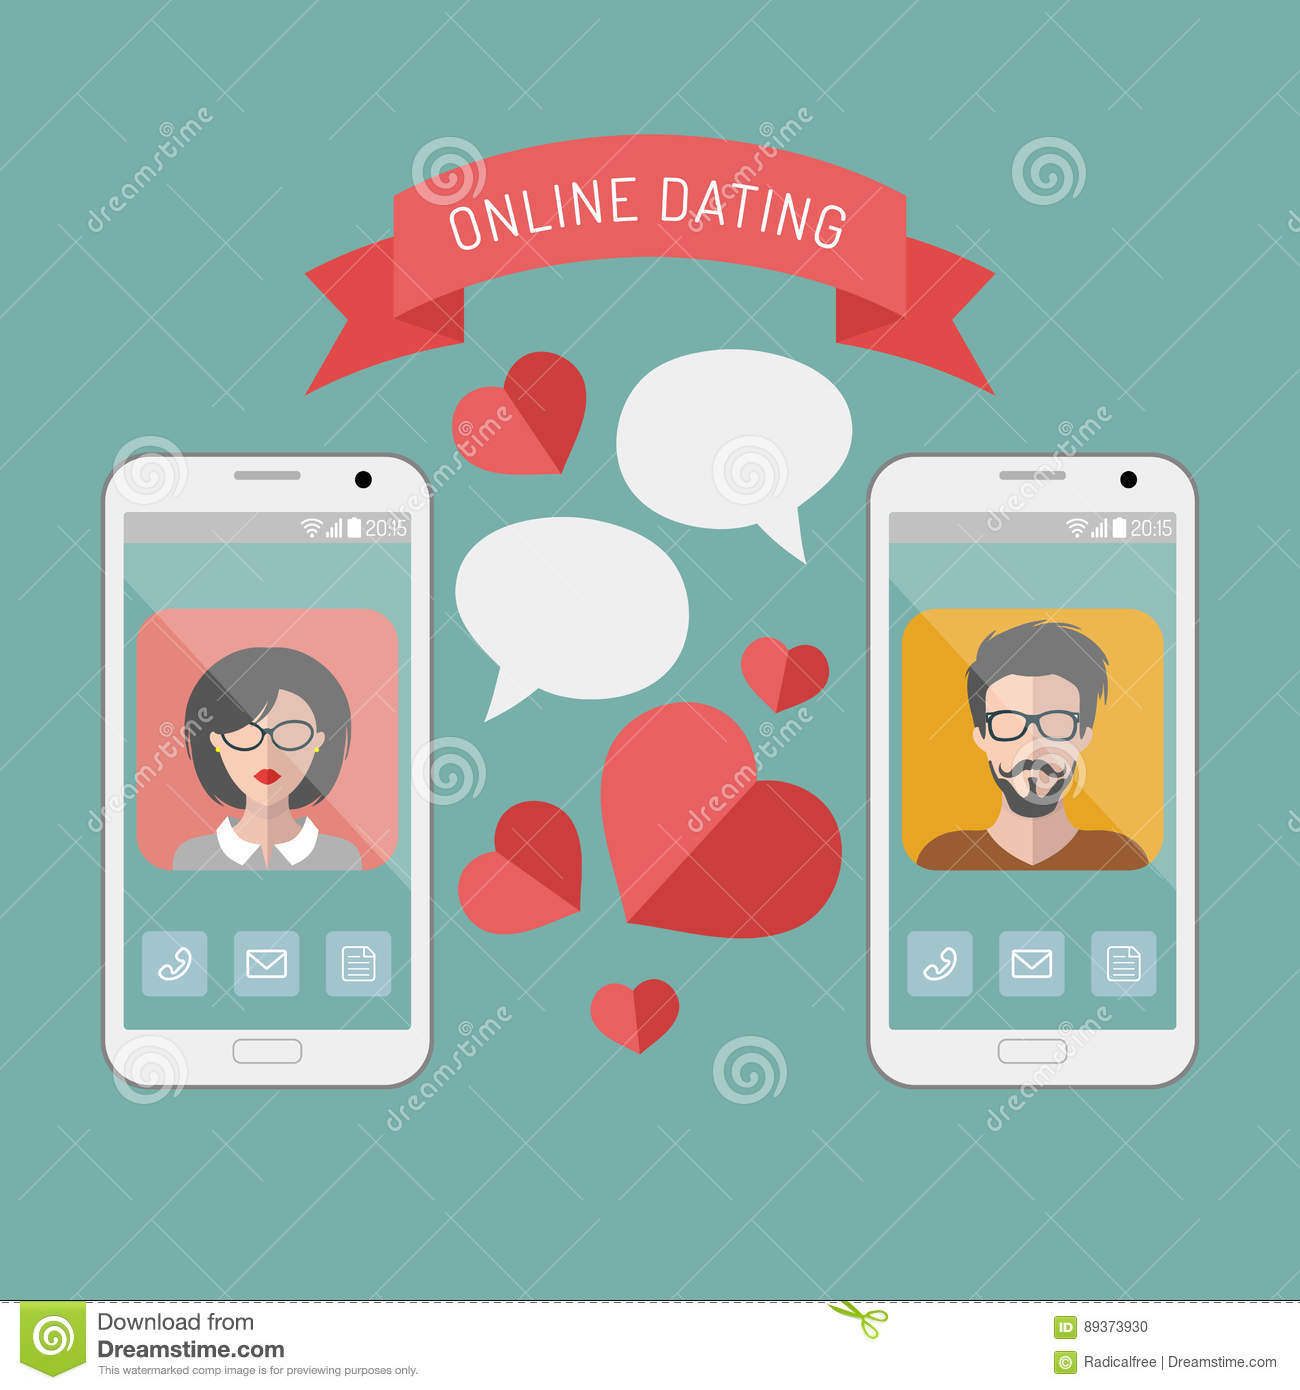 fat guy dating app Dating tips for fat guys october 14, 2013 by dr nerdlove thank you doctor for finally bringing insight on dating from a fat guy's perspective.